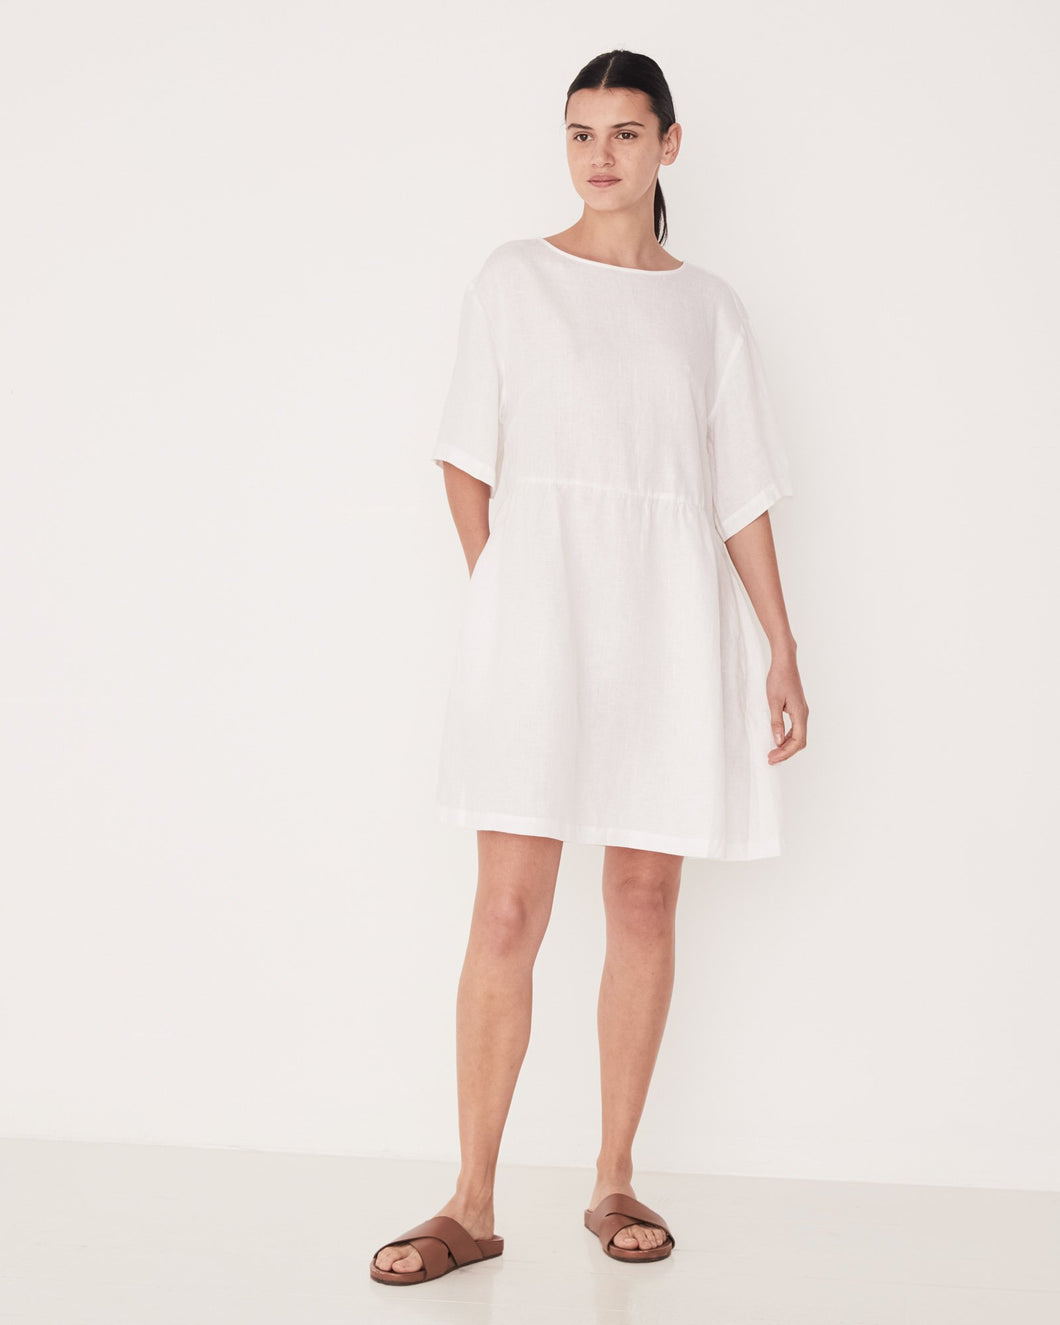 Drawn Dress - Available in White & Seafoam